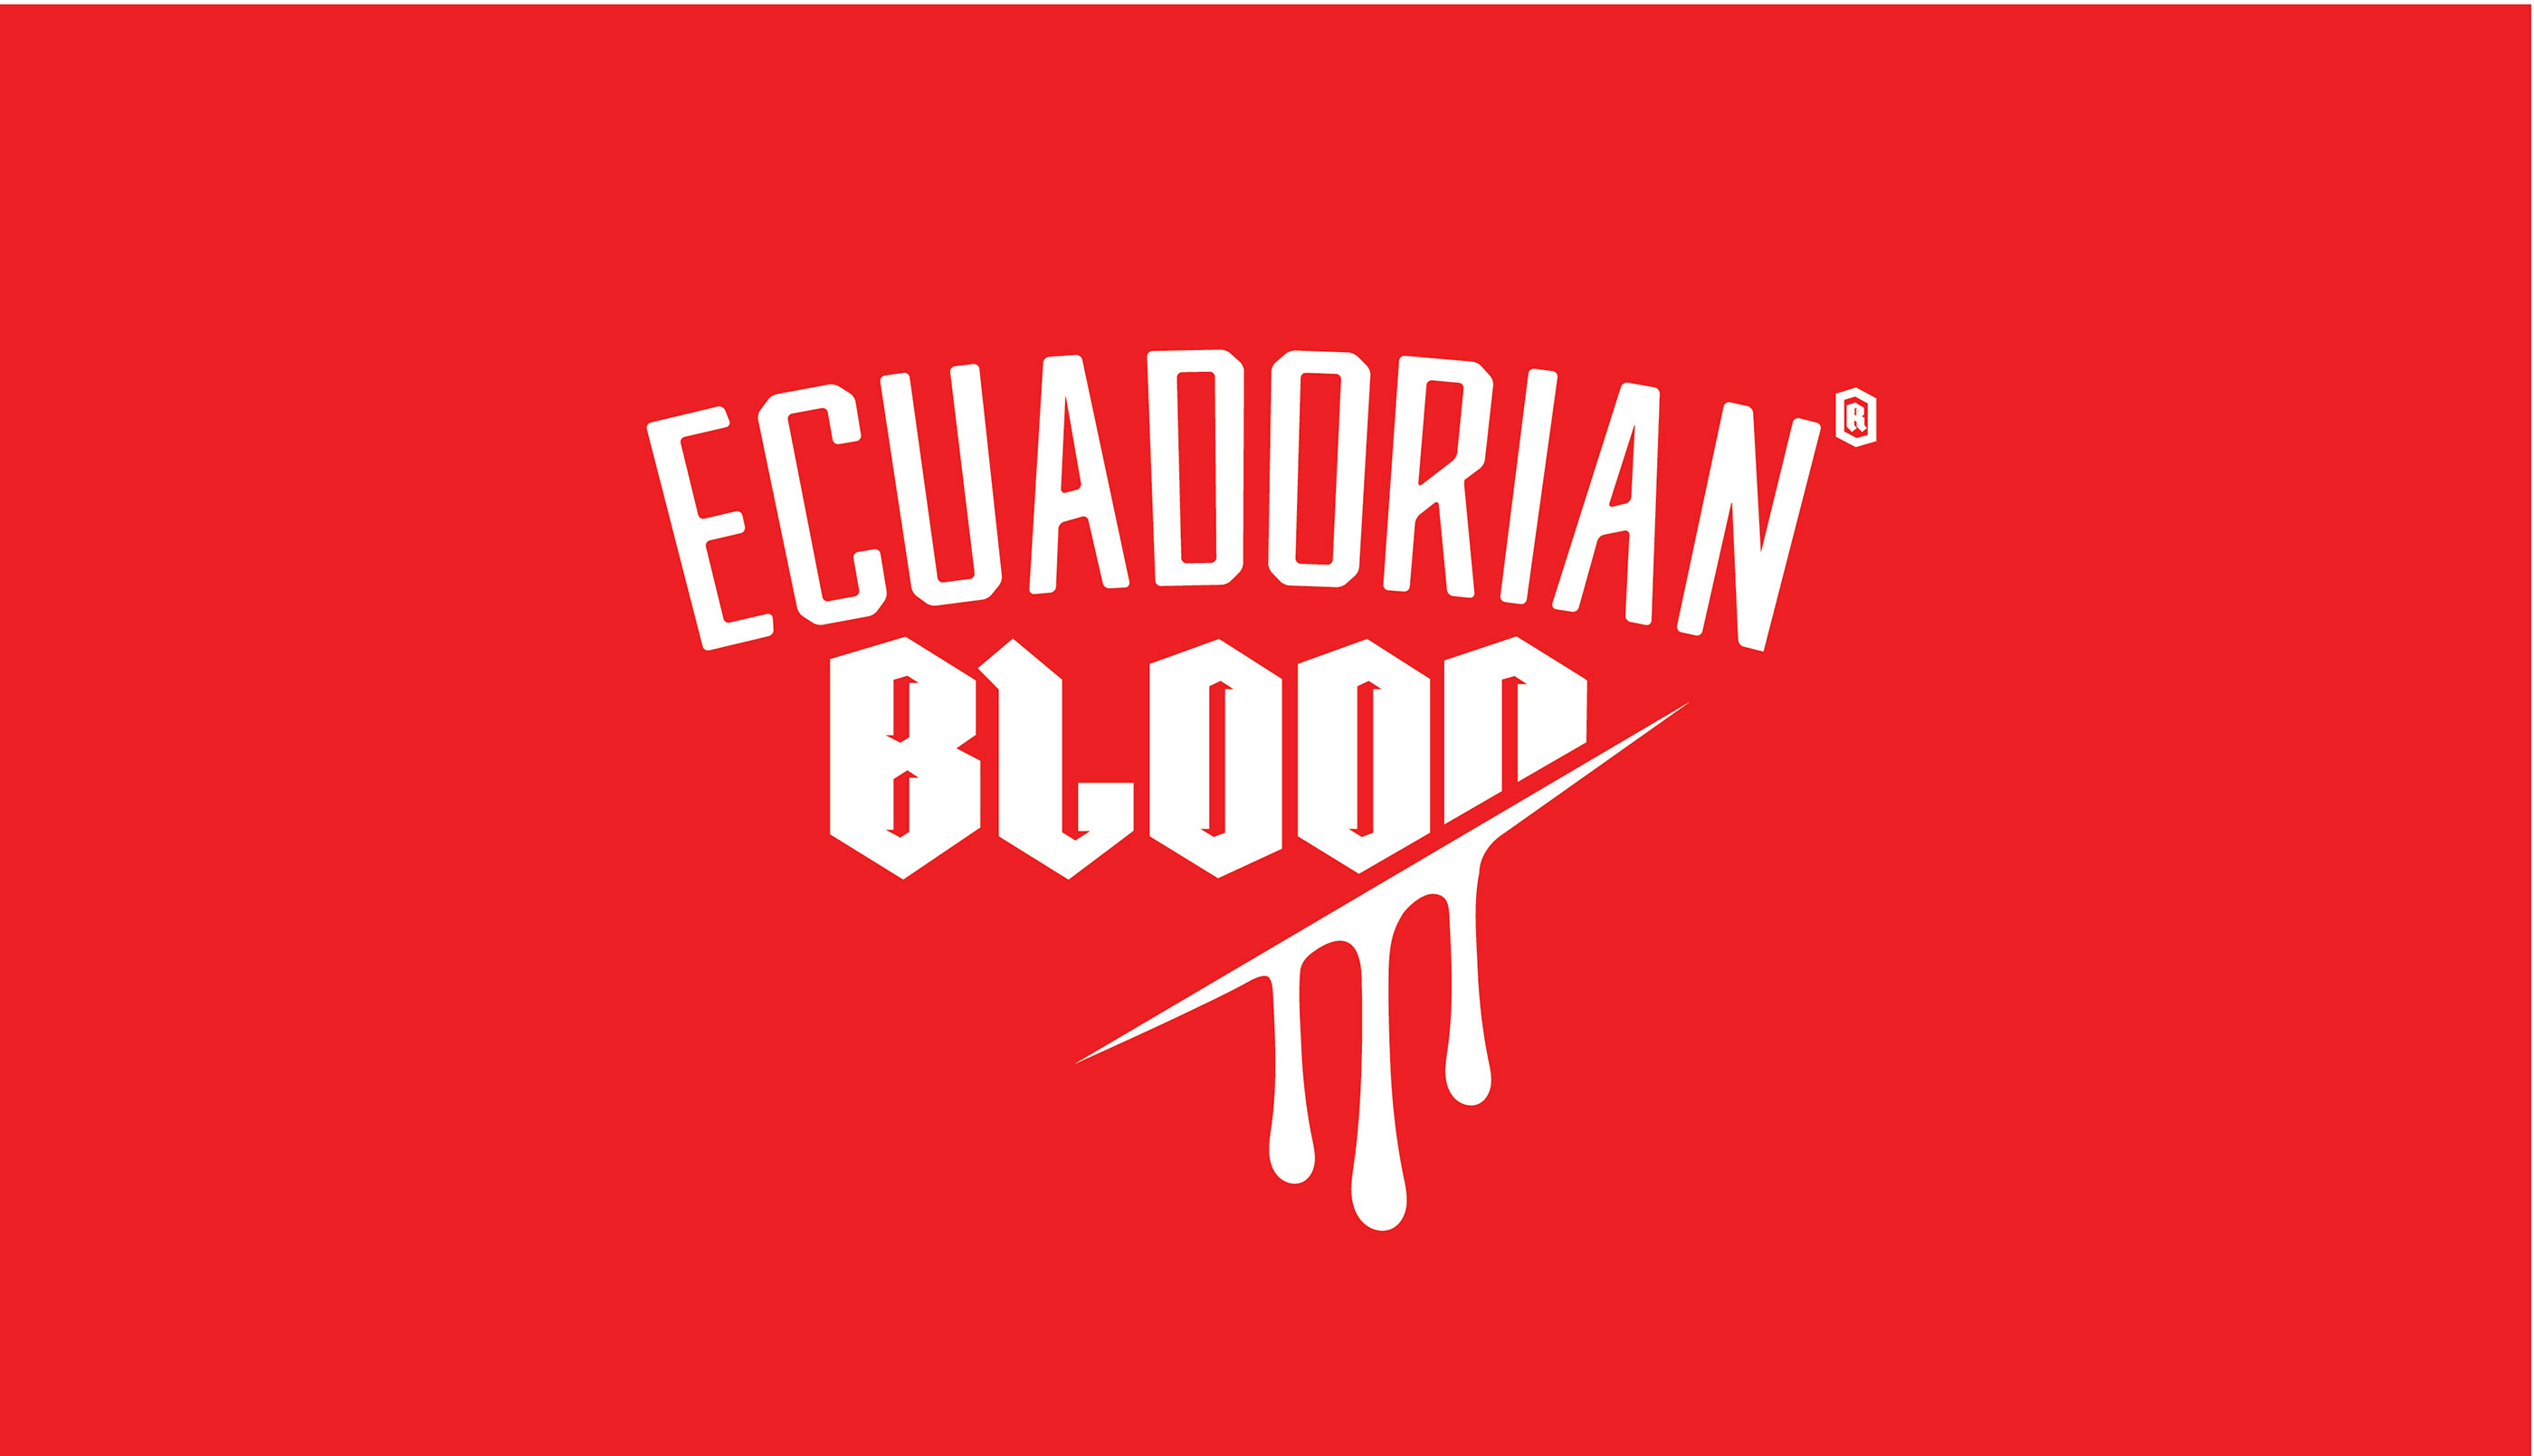 Ecuadorian Blood